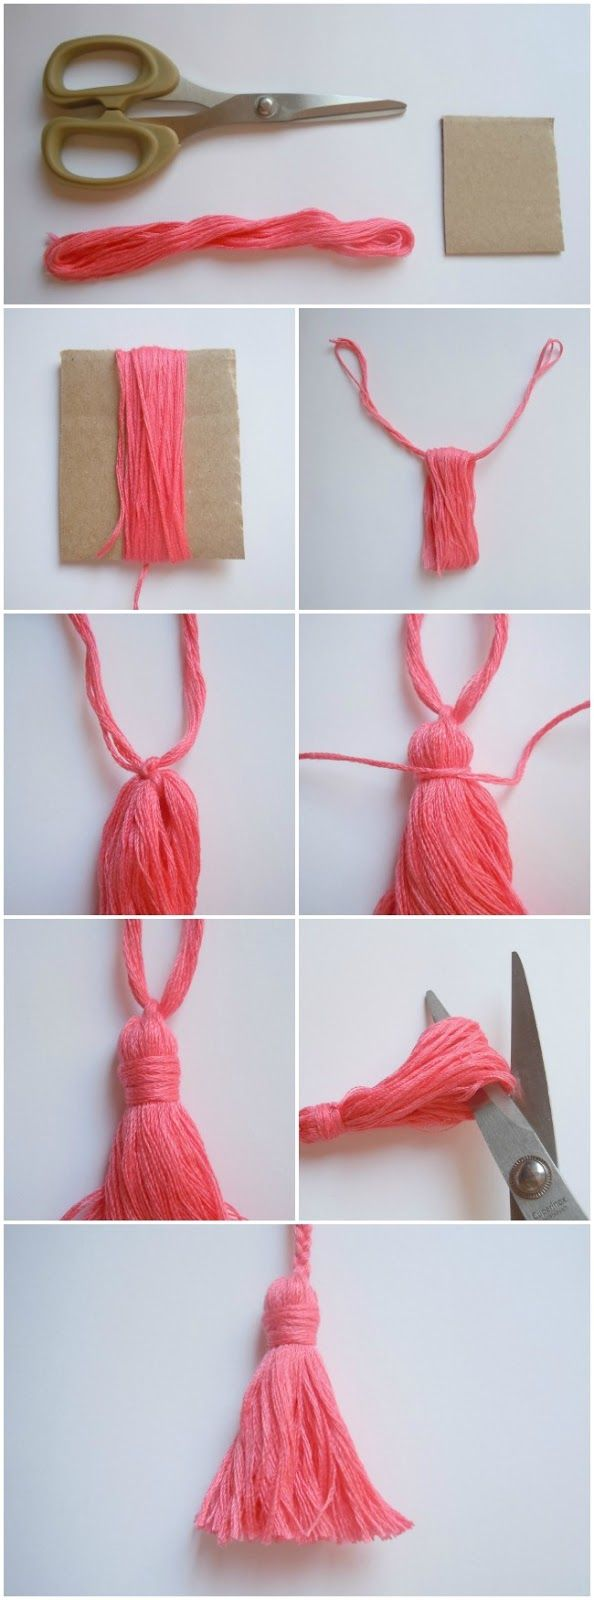 HOW TO MAKE TASSELS #tassel #make #DIY #yarn #embellish